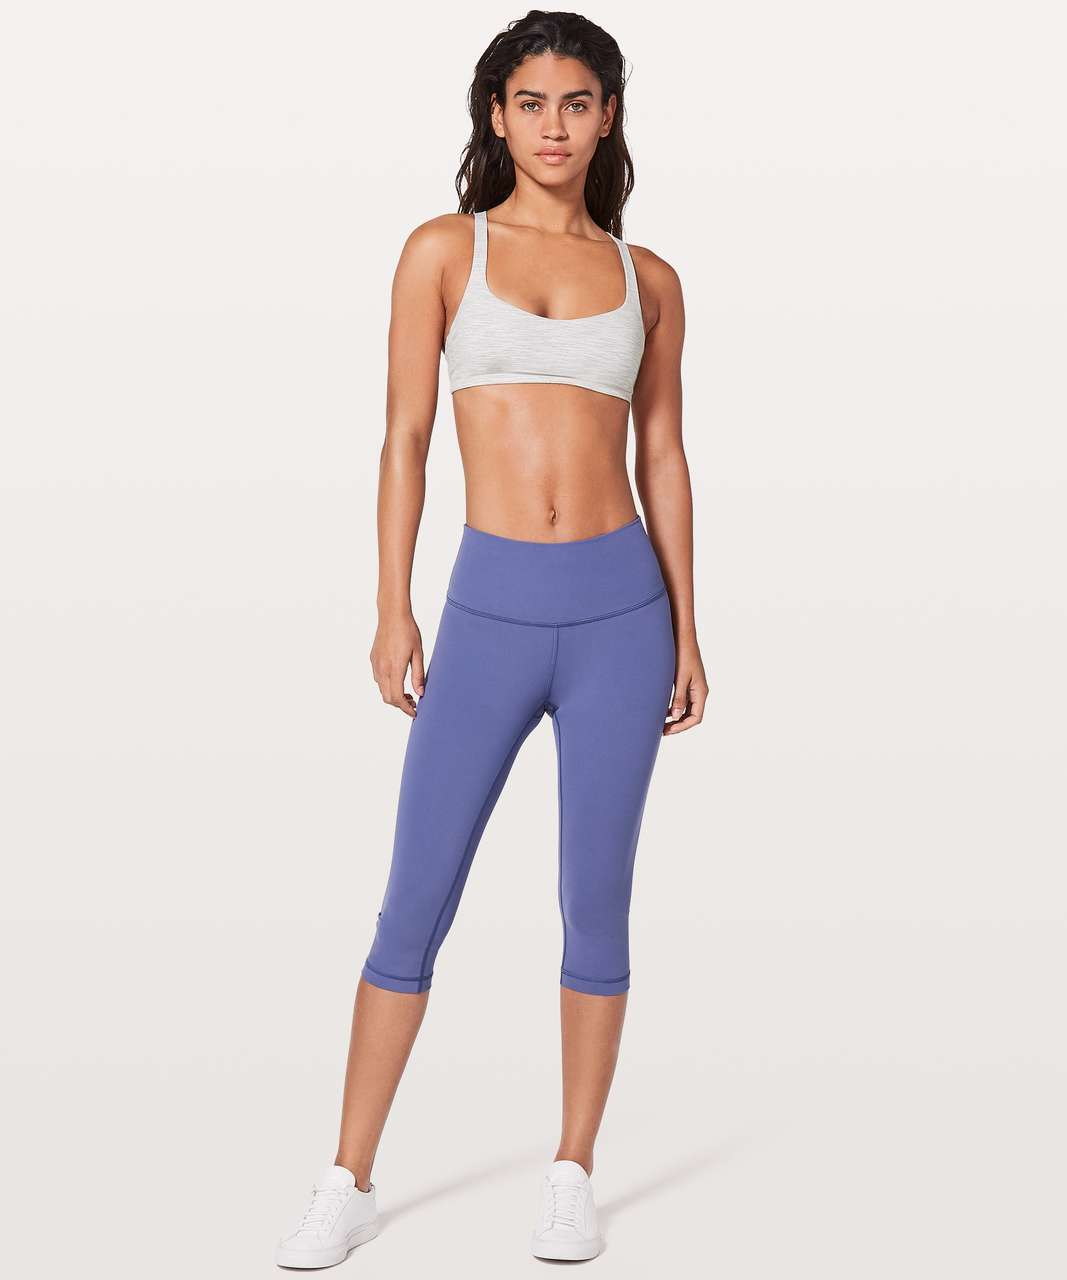 Lululemon Free To Be Bra - Wee Are From Space Nimbus Battleship / Brilliant Blue